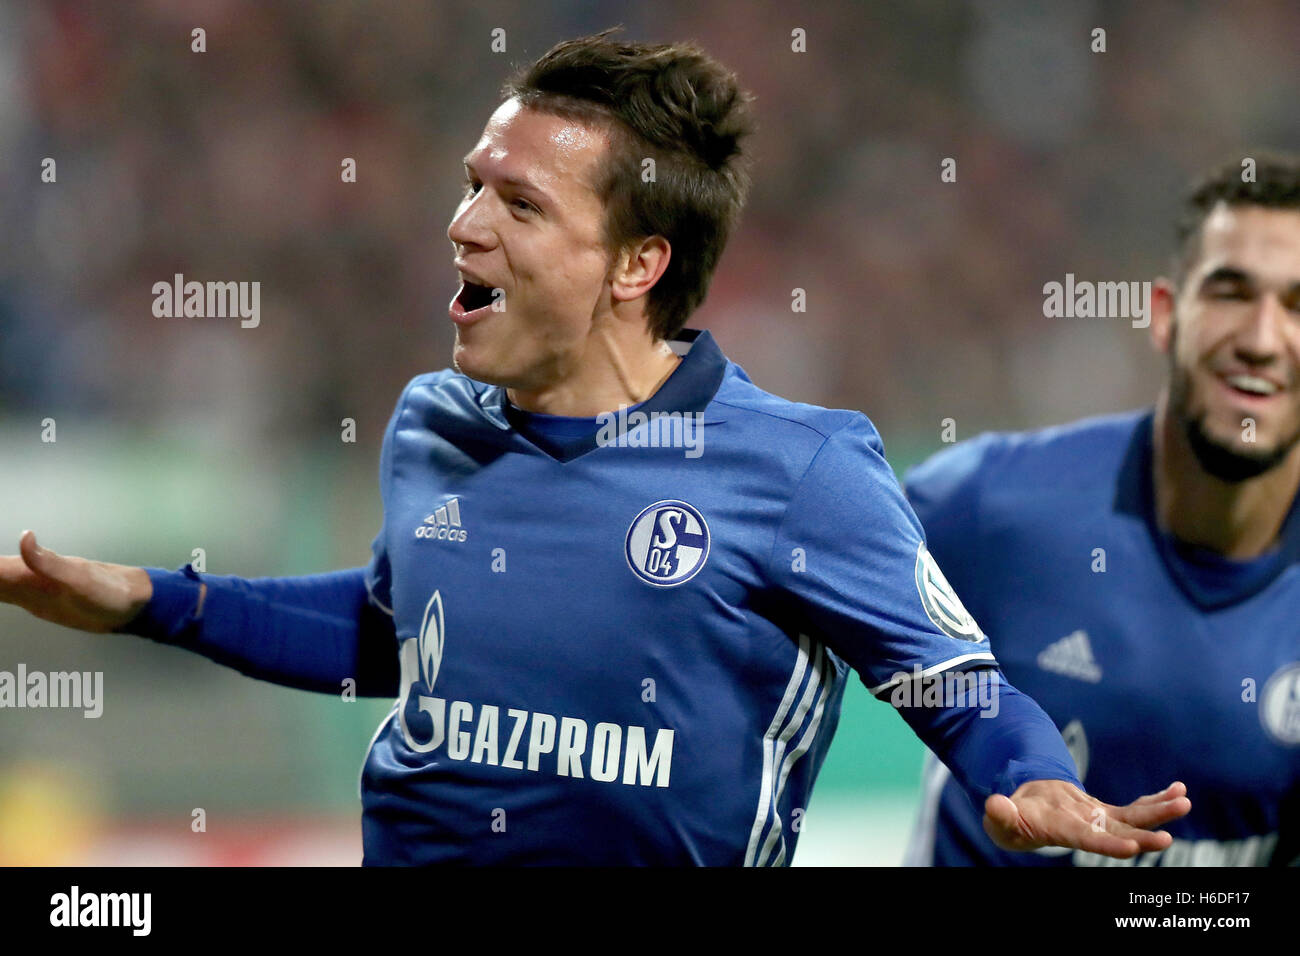 FC Schalke player Yevhen Konoplyanka celebrates after giving his